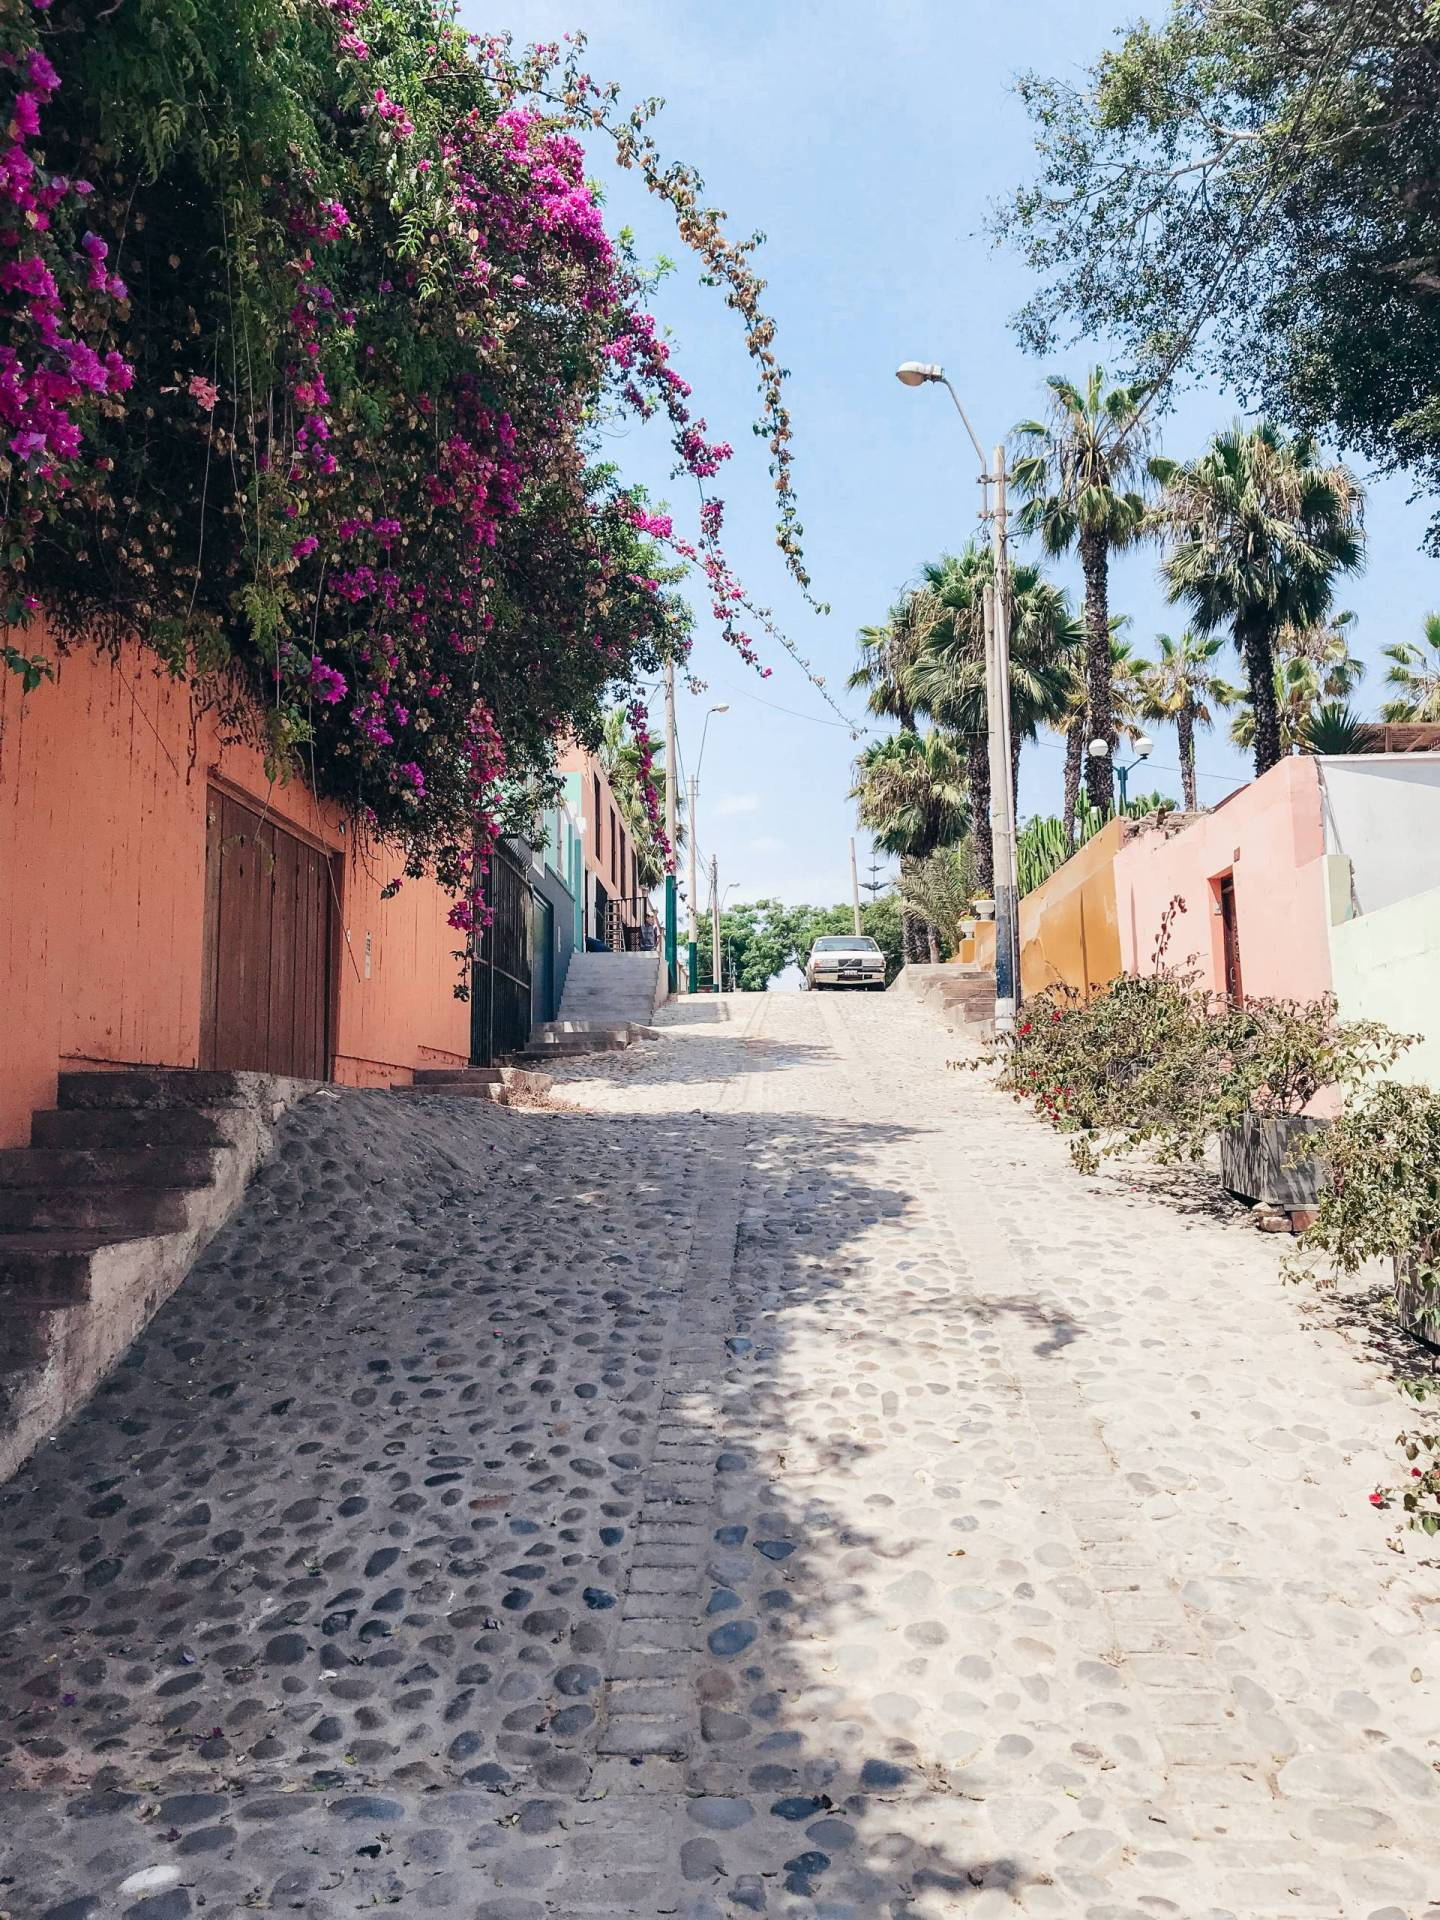 The Colorful Barranco Neighborhood in Lima, Peru